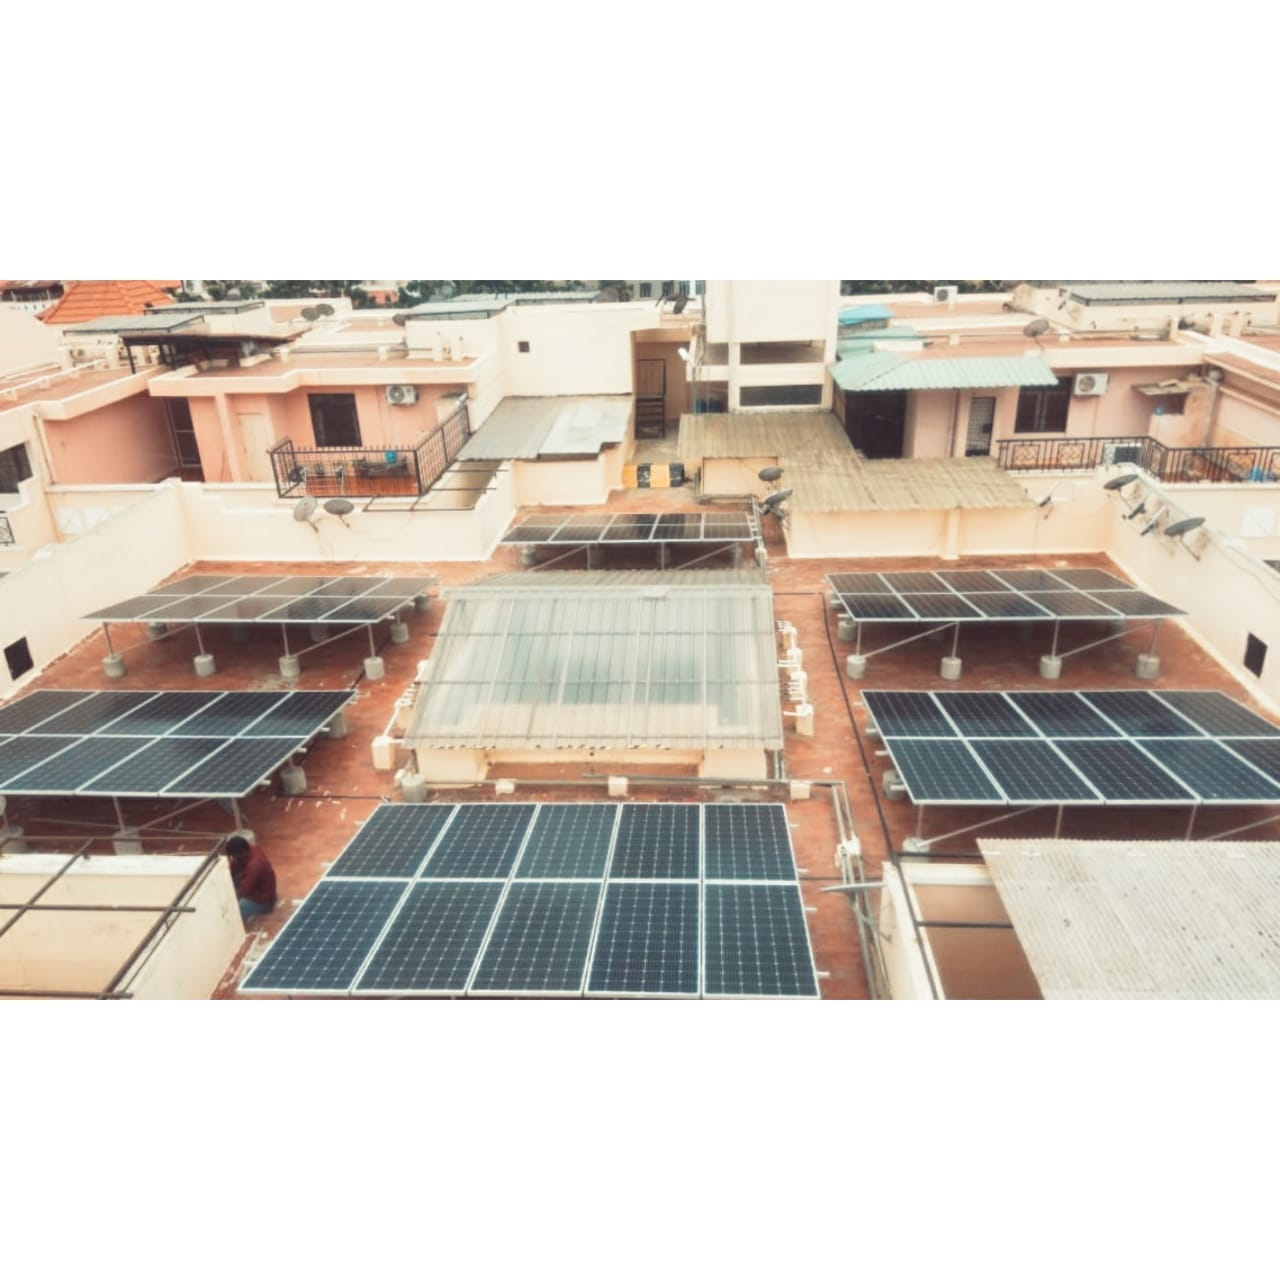 Solar Panels installed at site